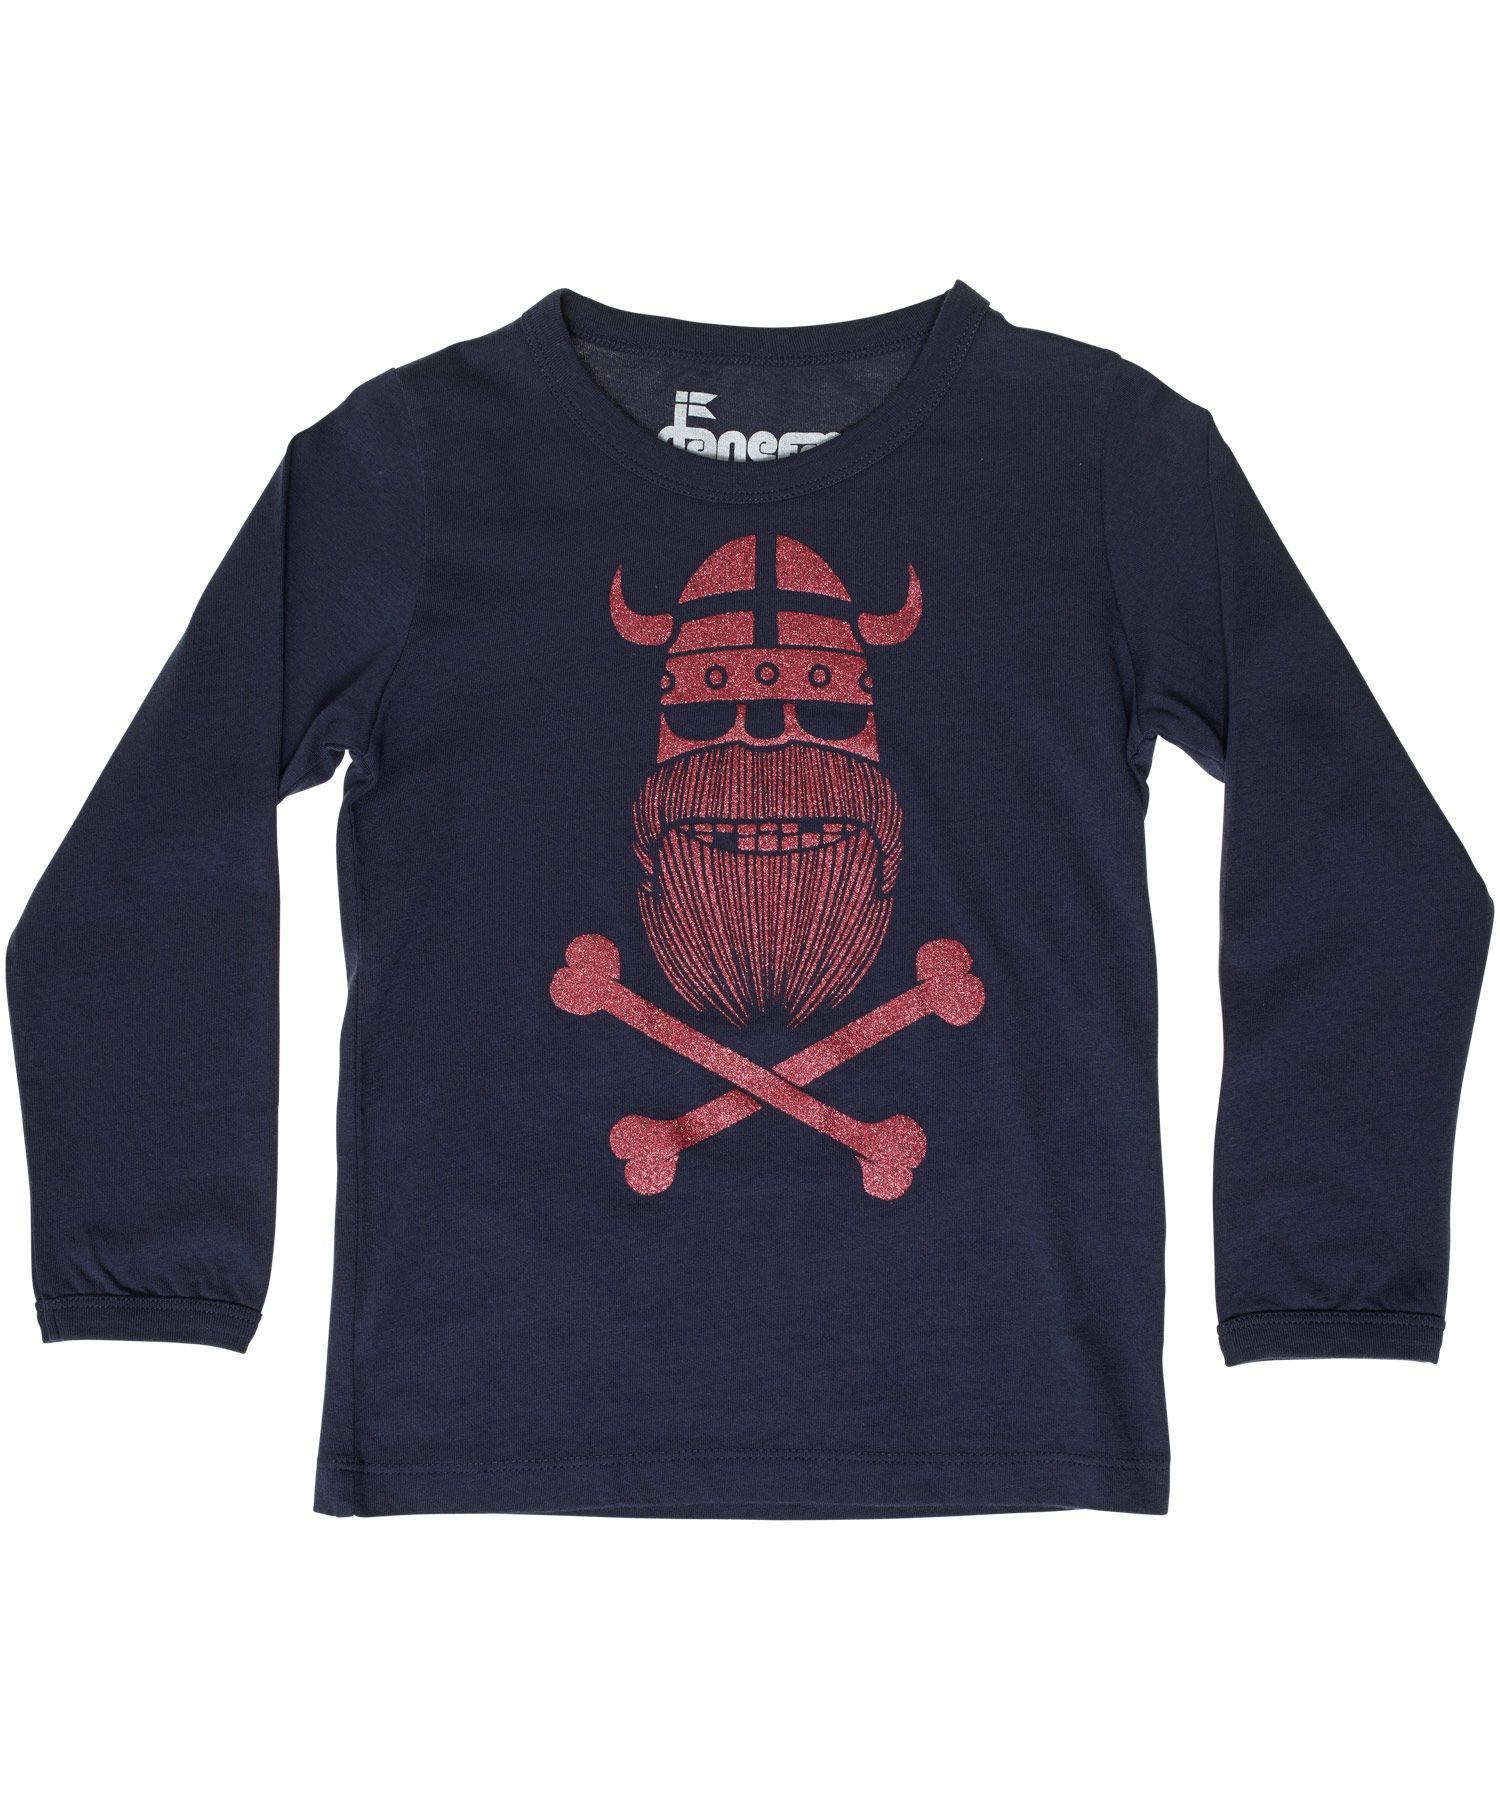 Finally a Viking for our tough girls! Danefae navy basic t-shirt with pink glitter ghost of Erik #emilea